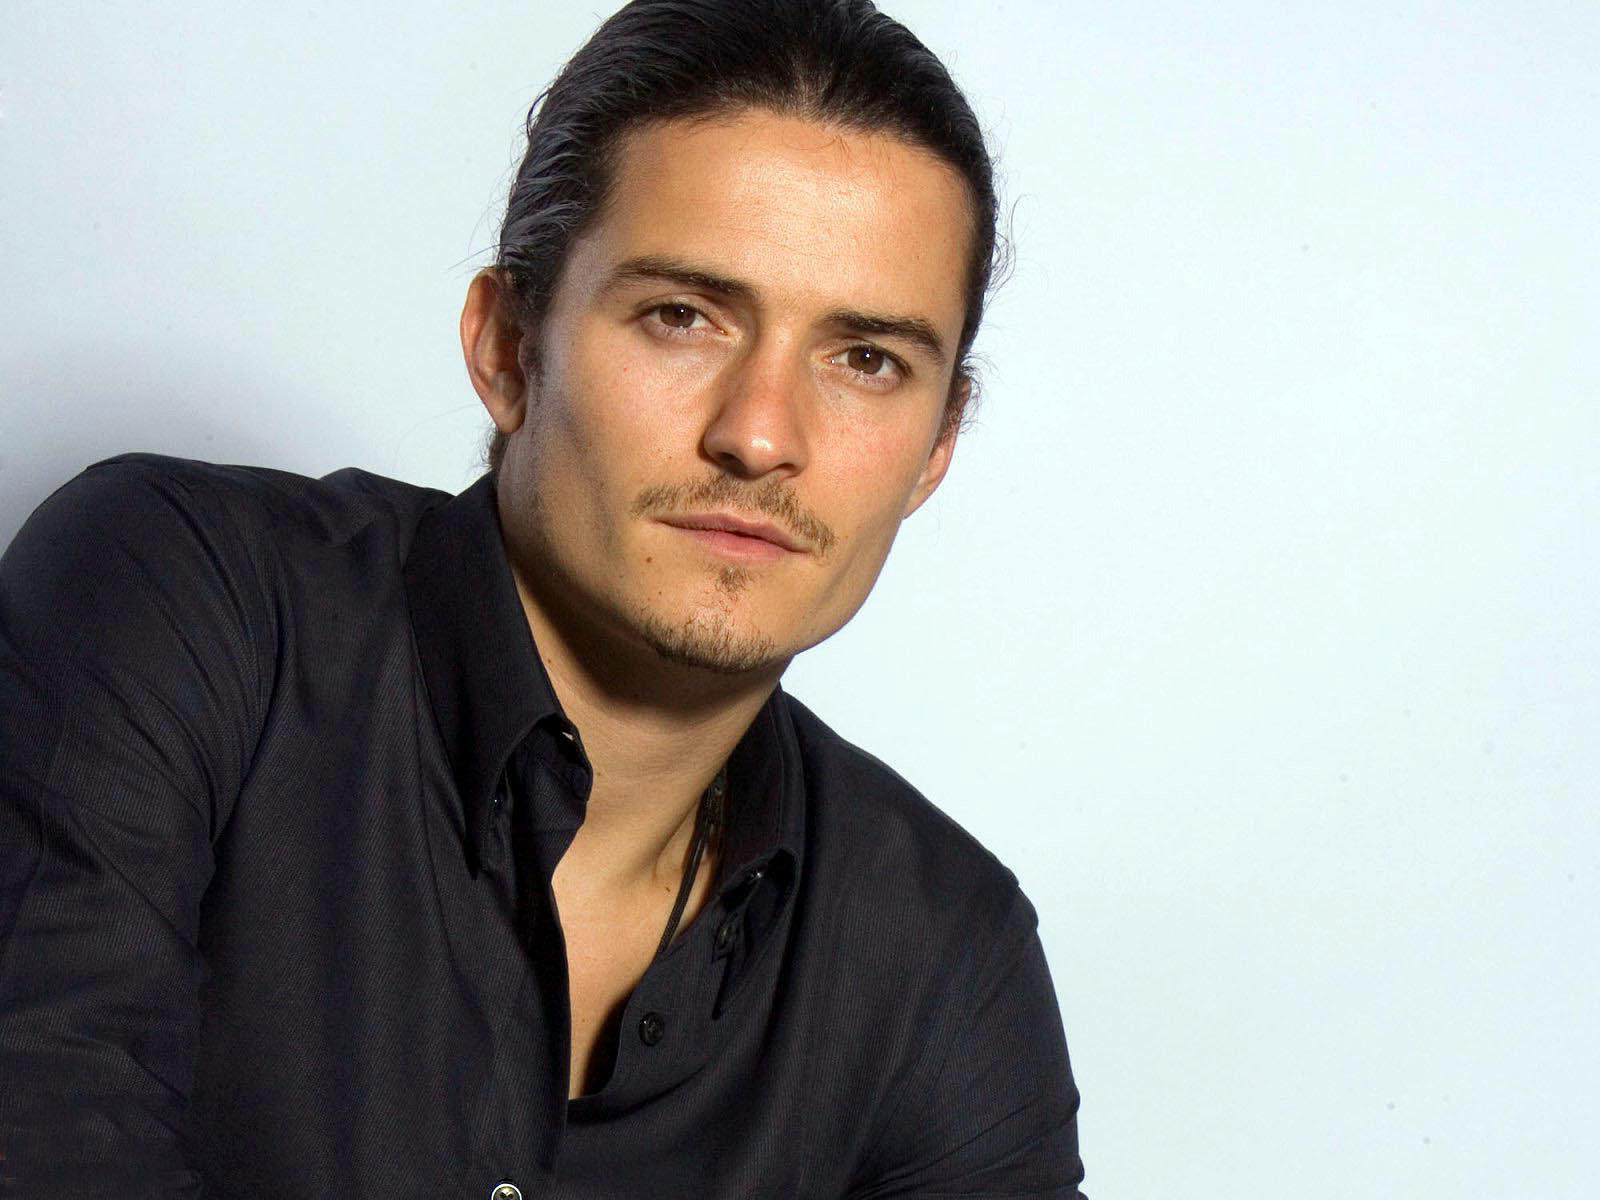 Orlando Bloom Wallpaper 2013 Best Desktop HD Wallpa...